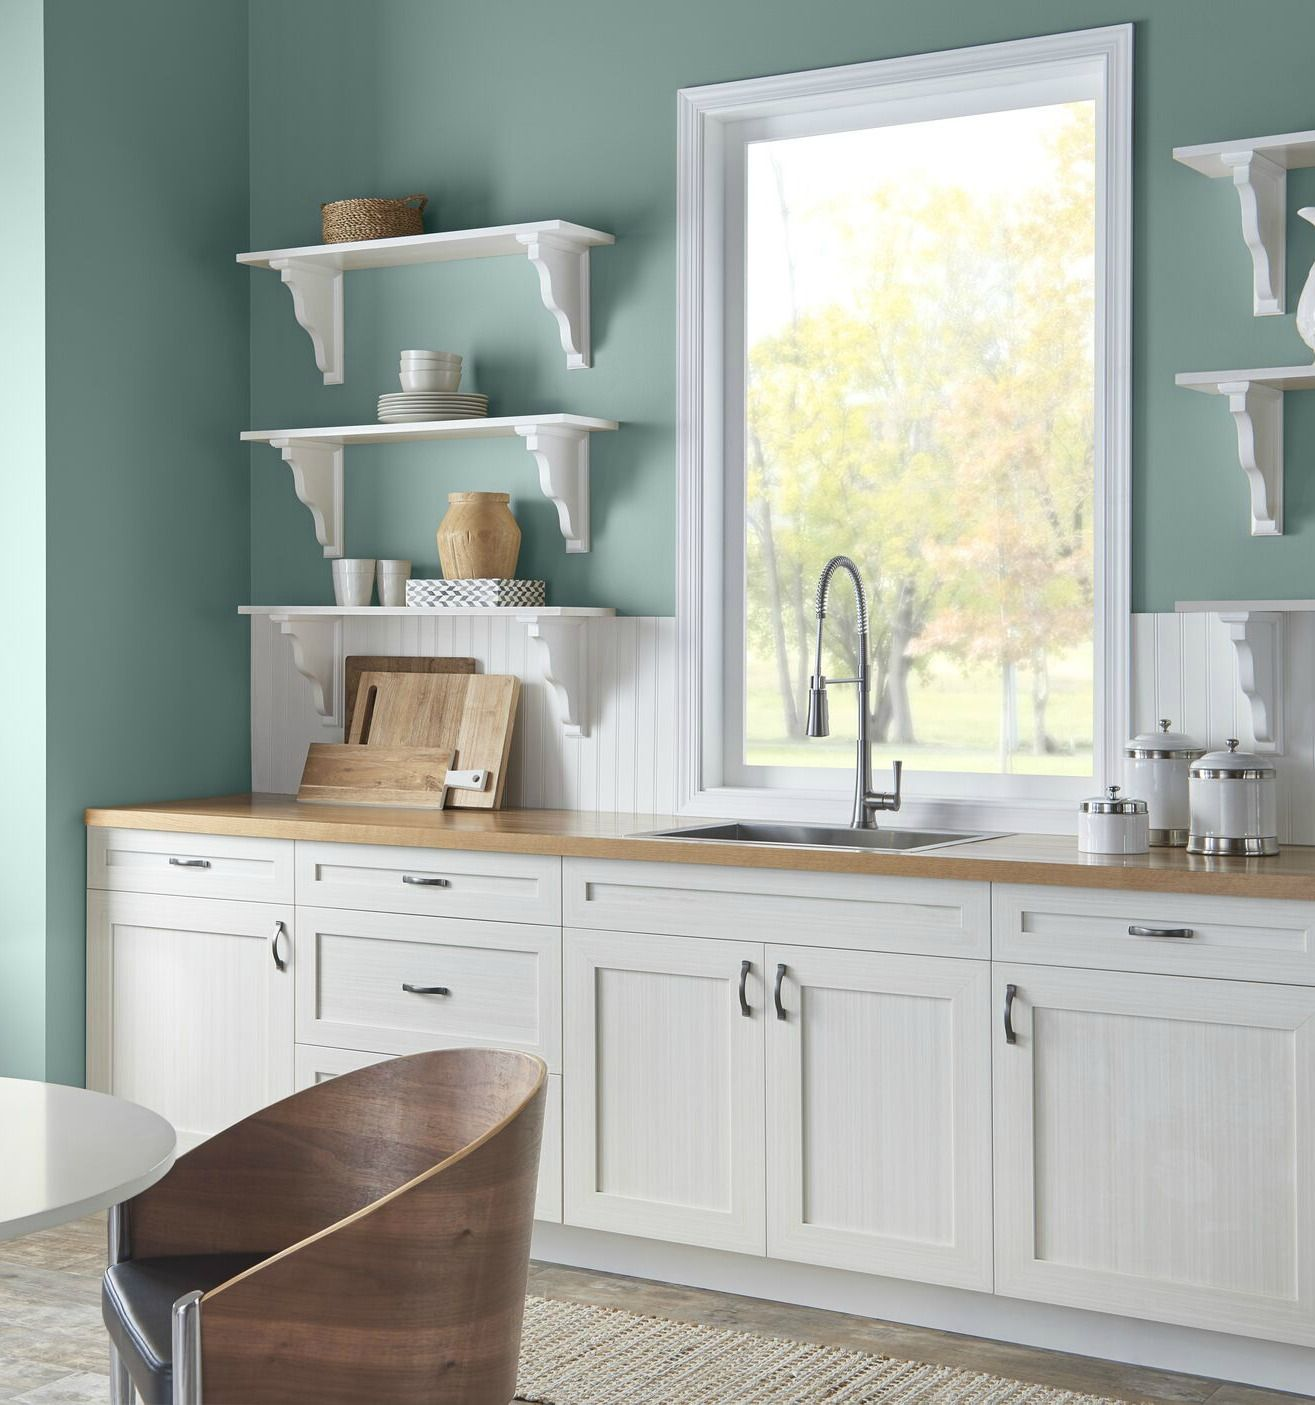 Pittura Stanza Da Letto behr-in-the-moment-in-a-kitchen-with-white-country-style